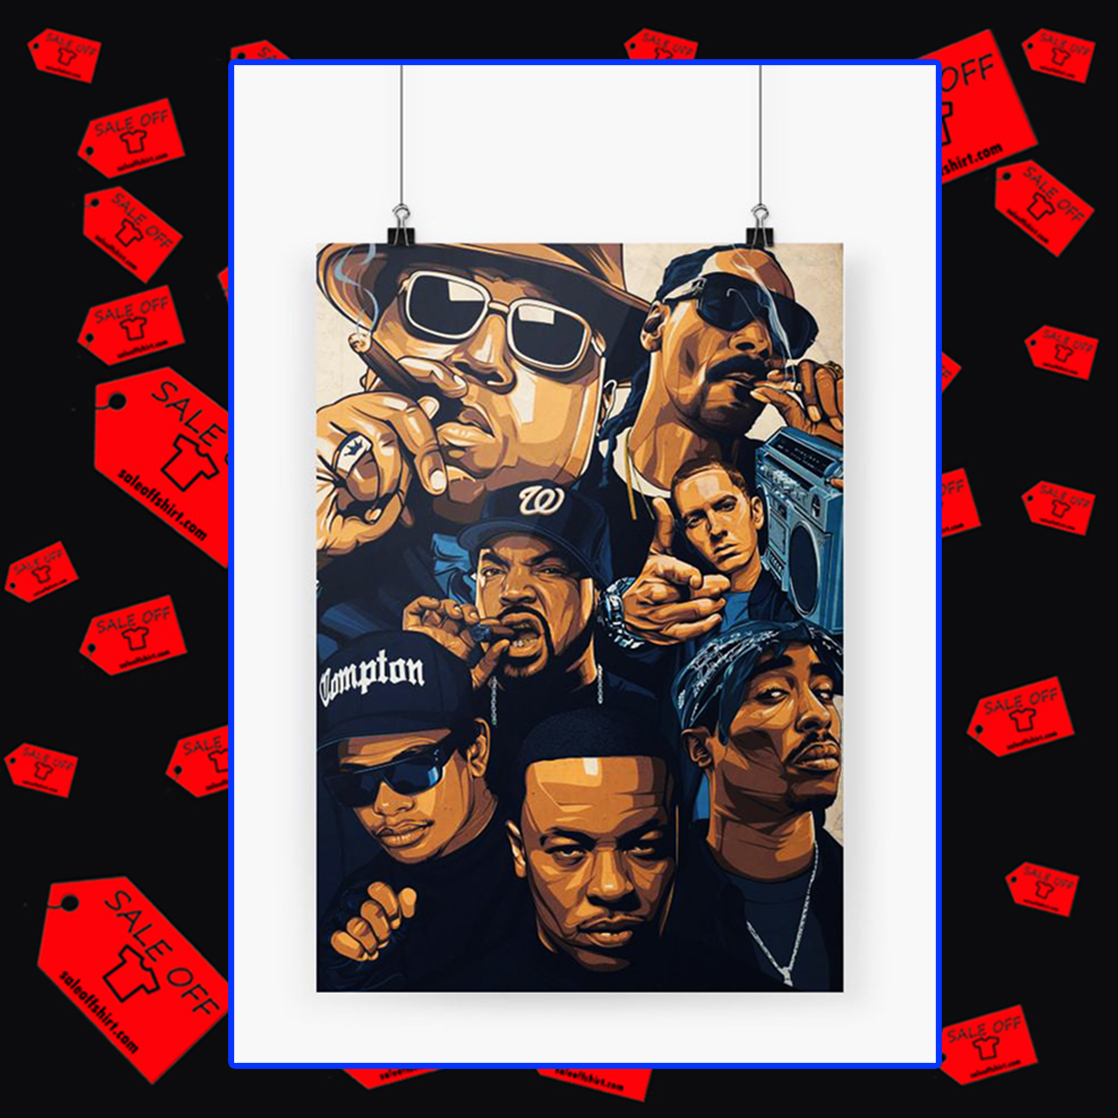 Notorious BIG Snoop Dogg Ice Cube Eminem Tupac Poster A1 (59x84)